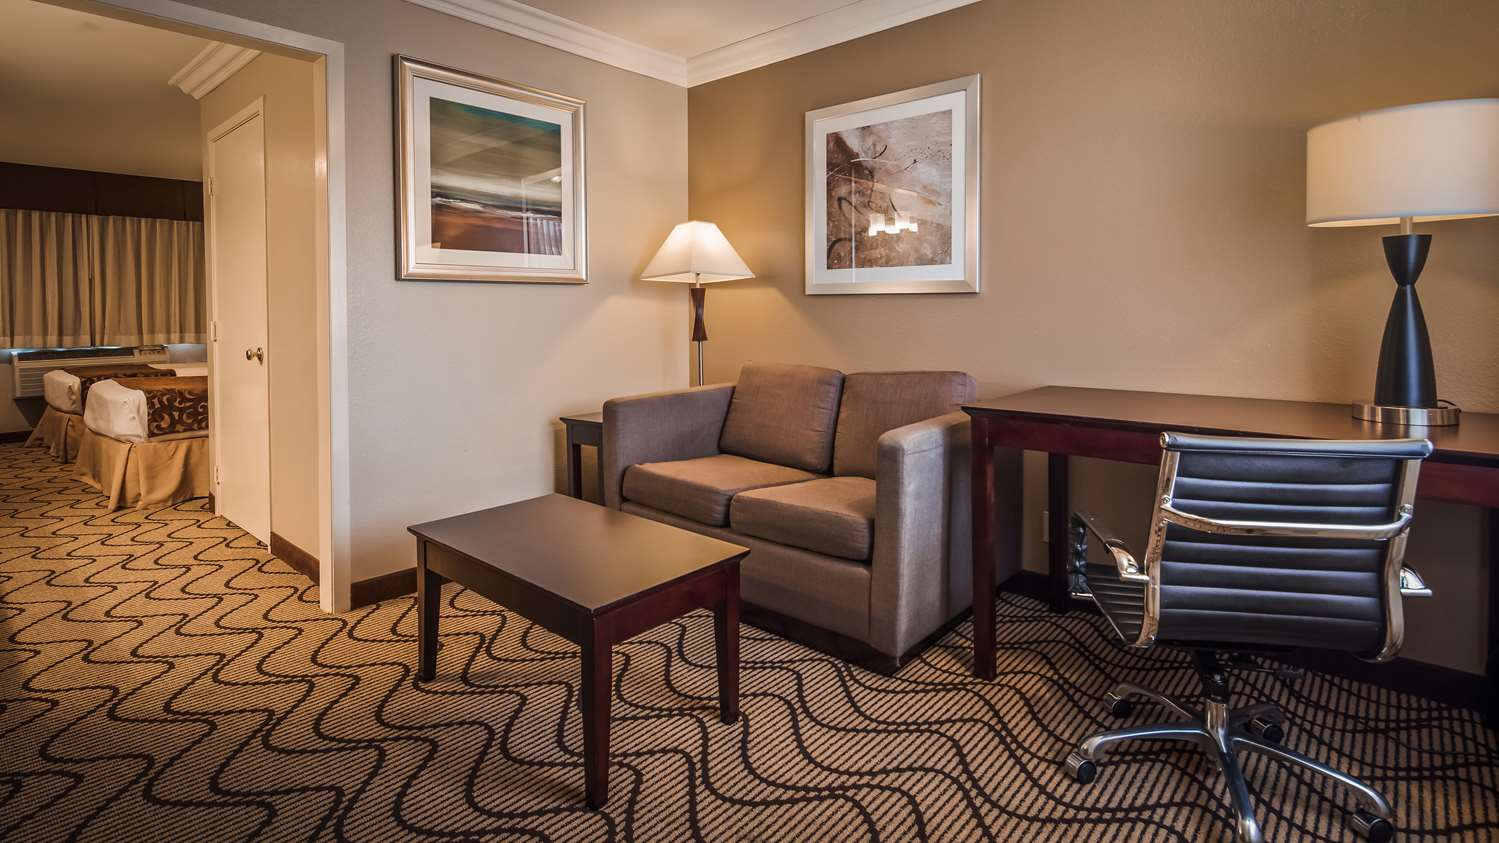 Best Western Plus Orchid Hotel & Suites Roseville, CA - See Discounts